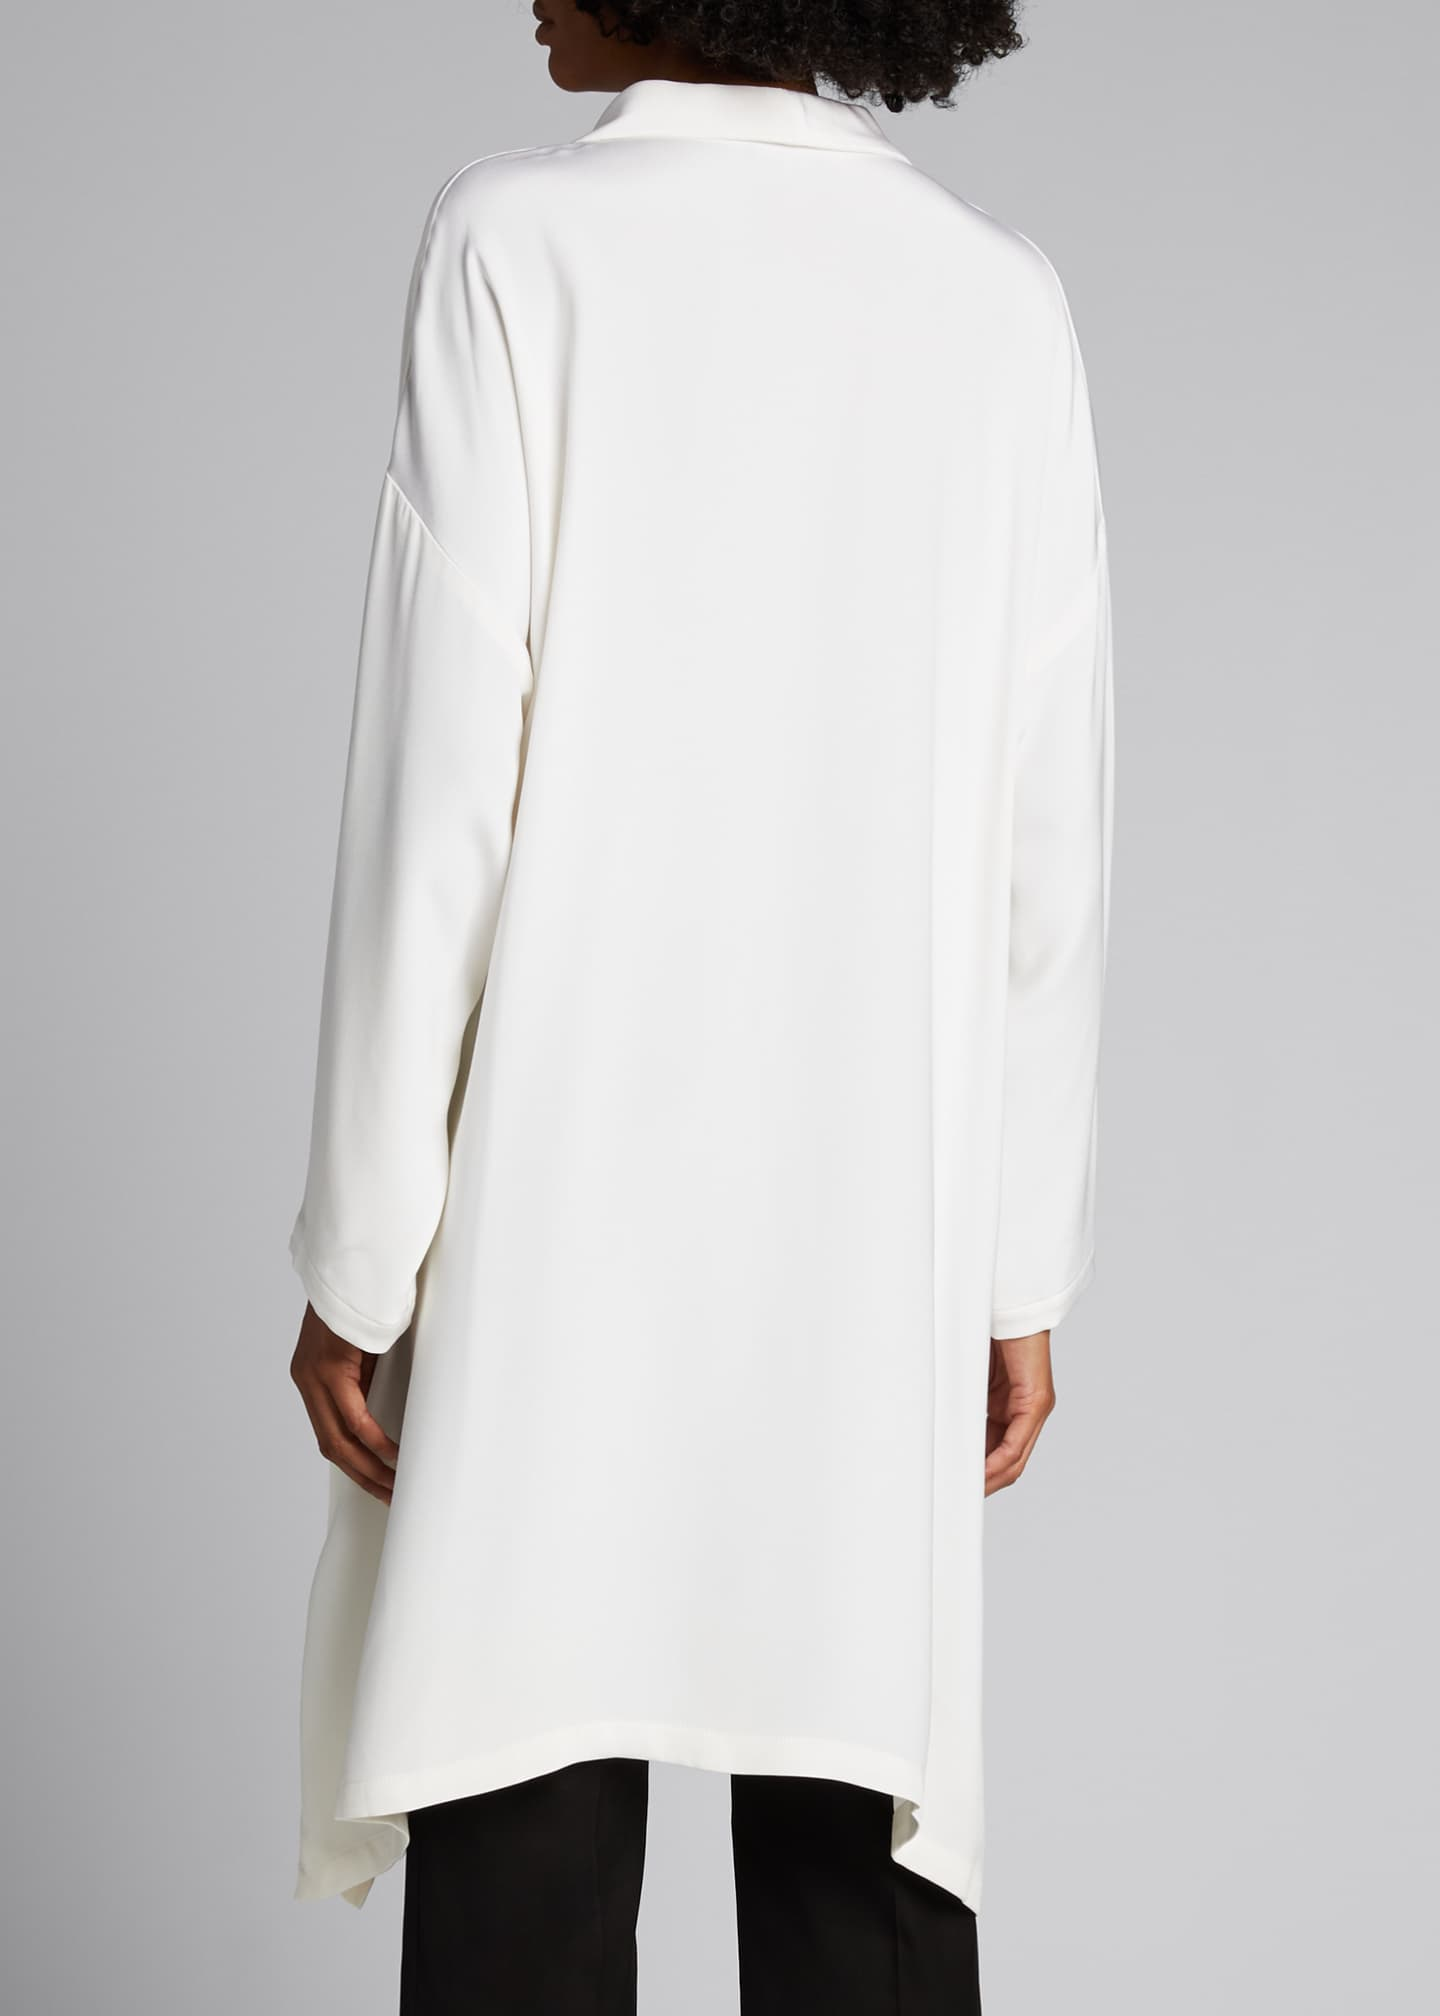 Image 2 of 5: Wide A-line Mid Weight Silk Long Shirt